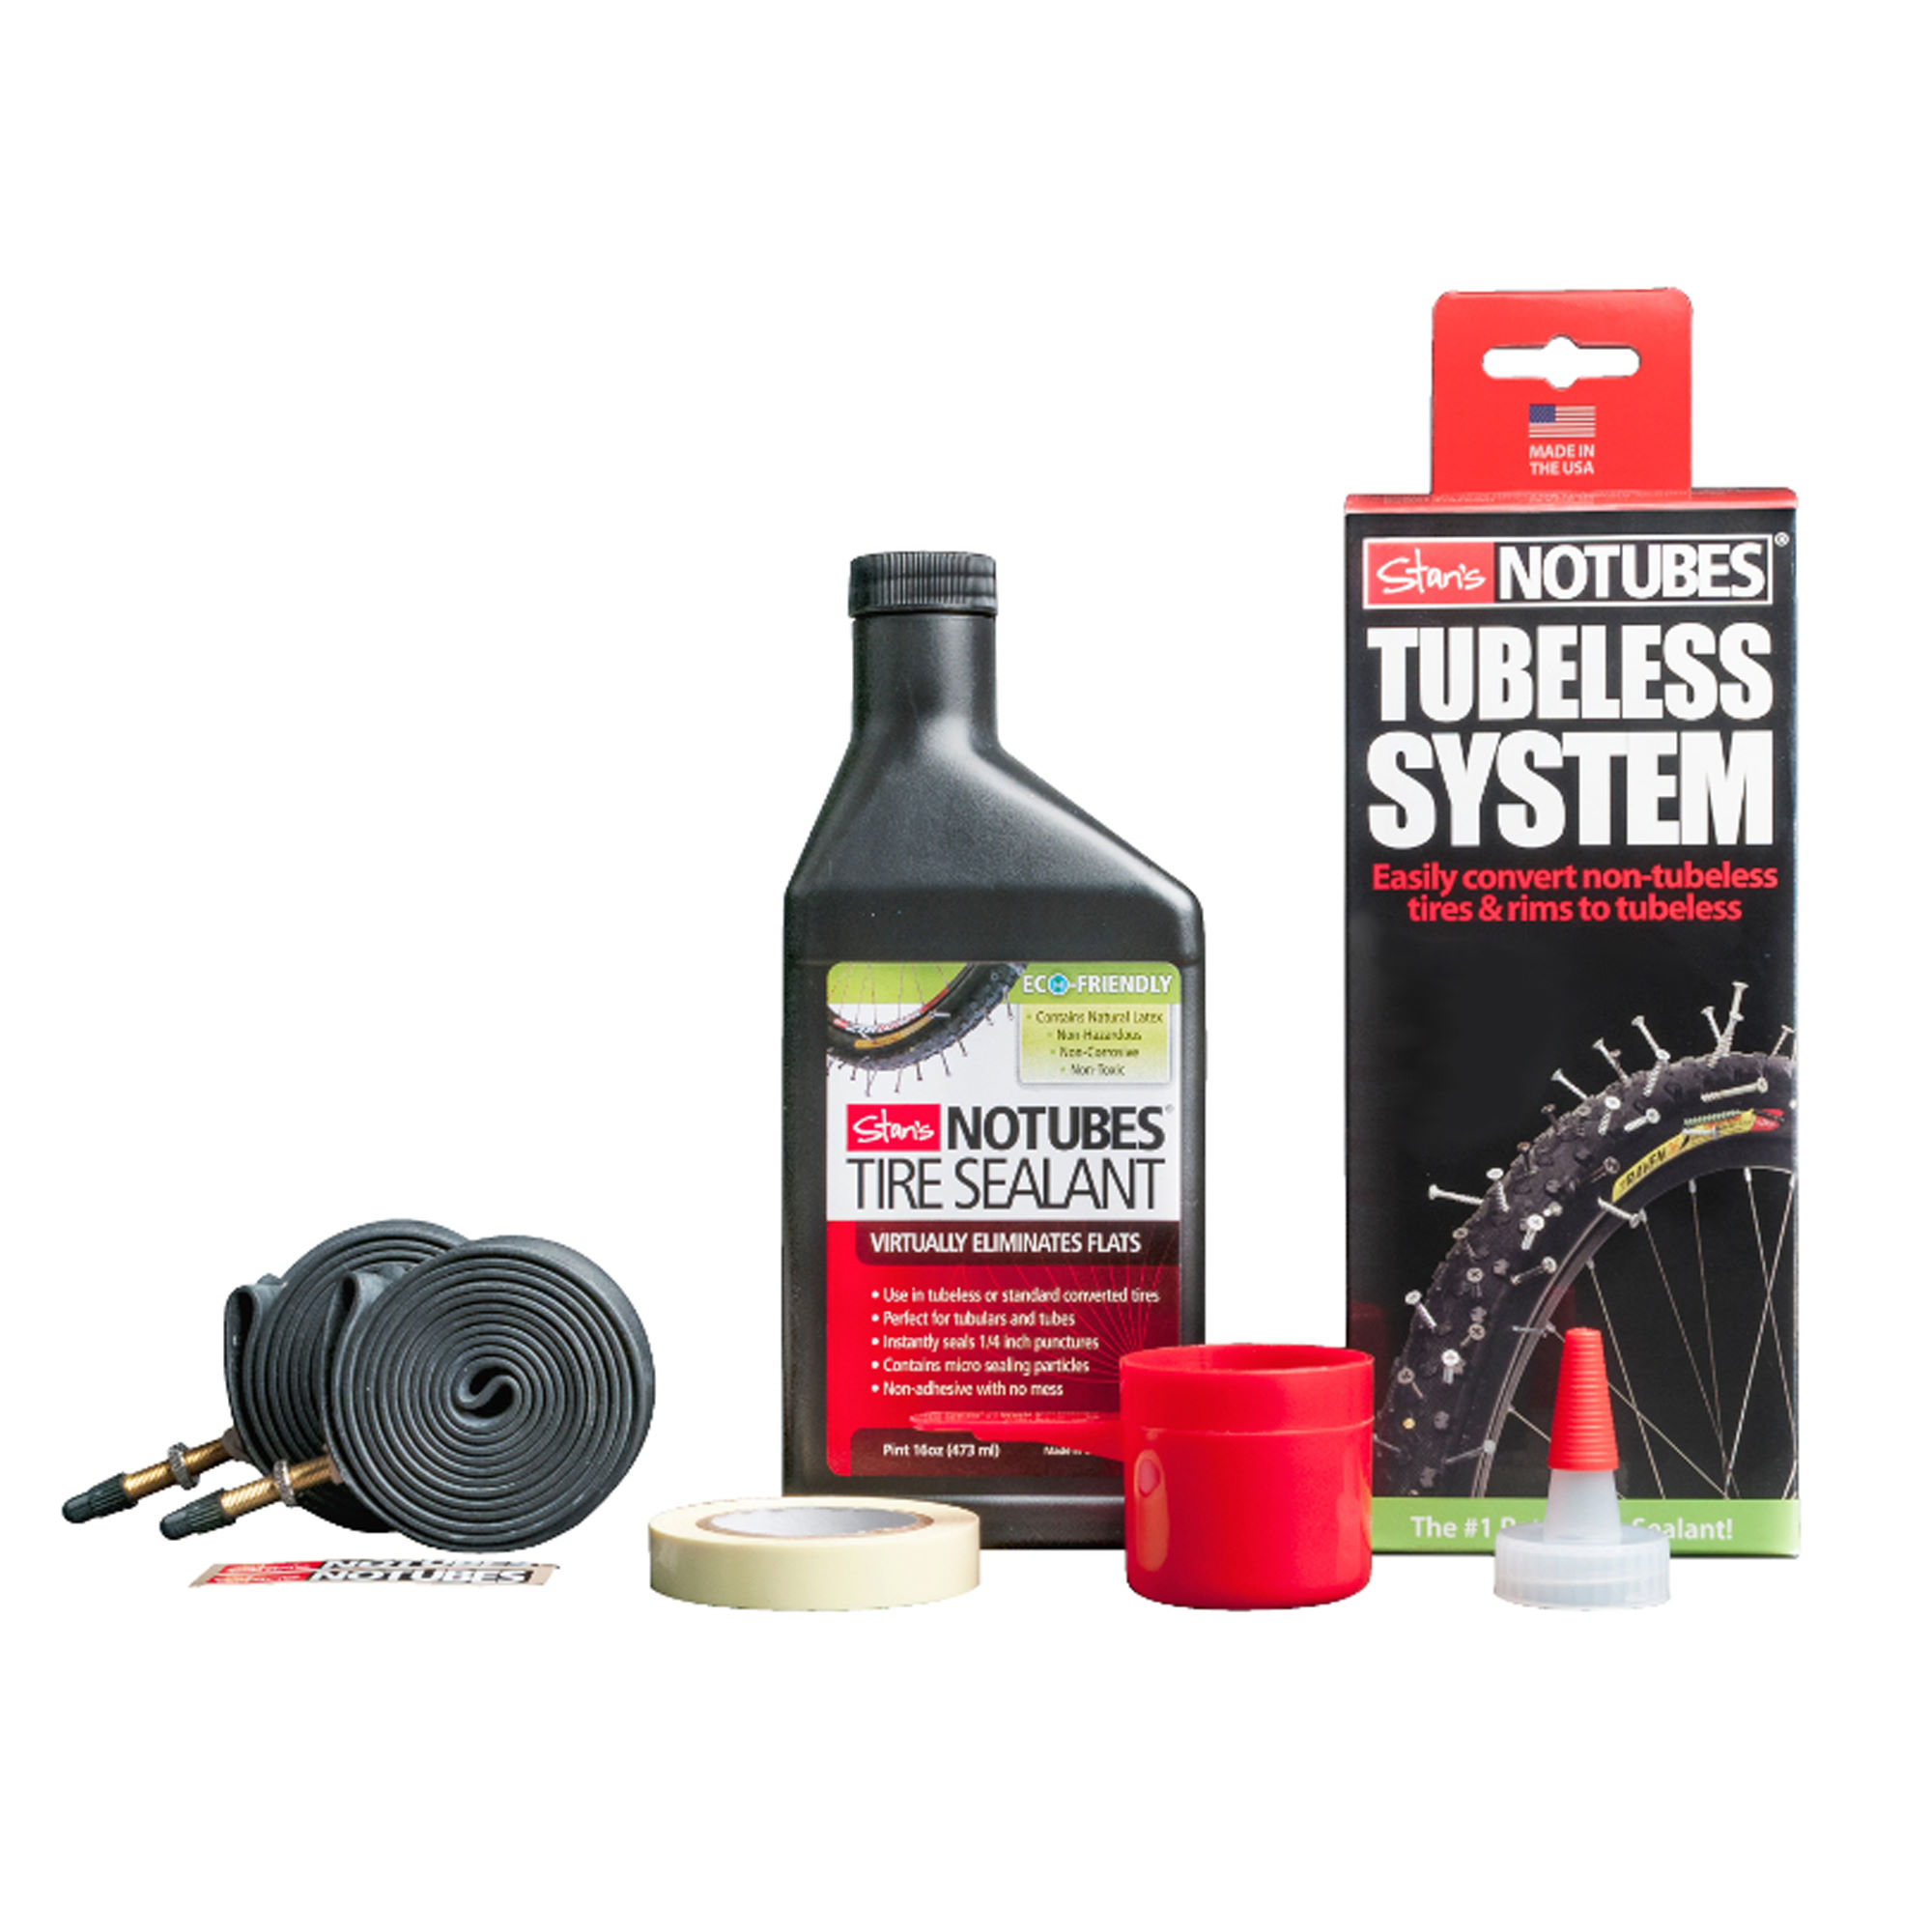 wiggle stans no tubes tubeless kit tubeless accessories. Black Bedroom Furniture Sets. Home Design Ideas